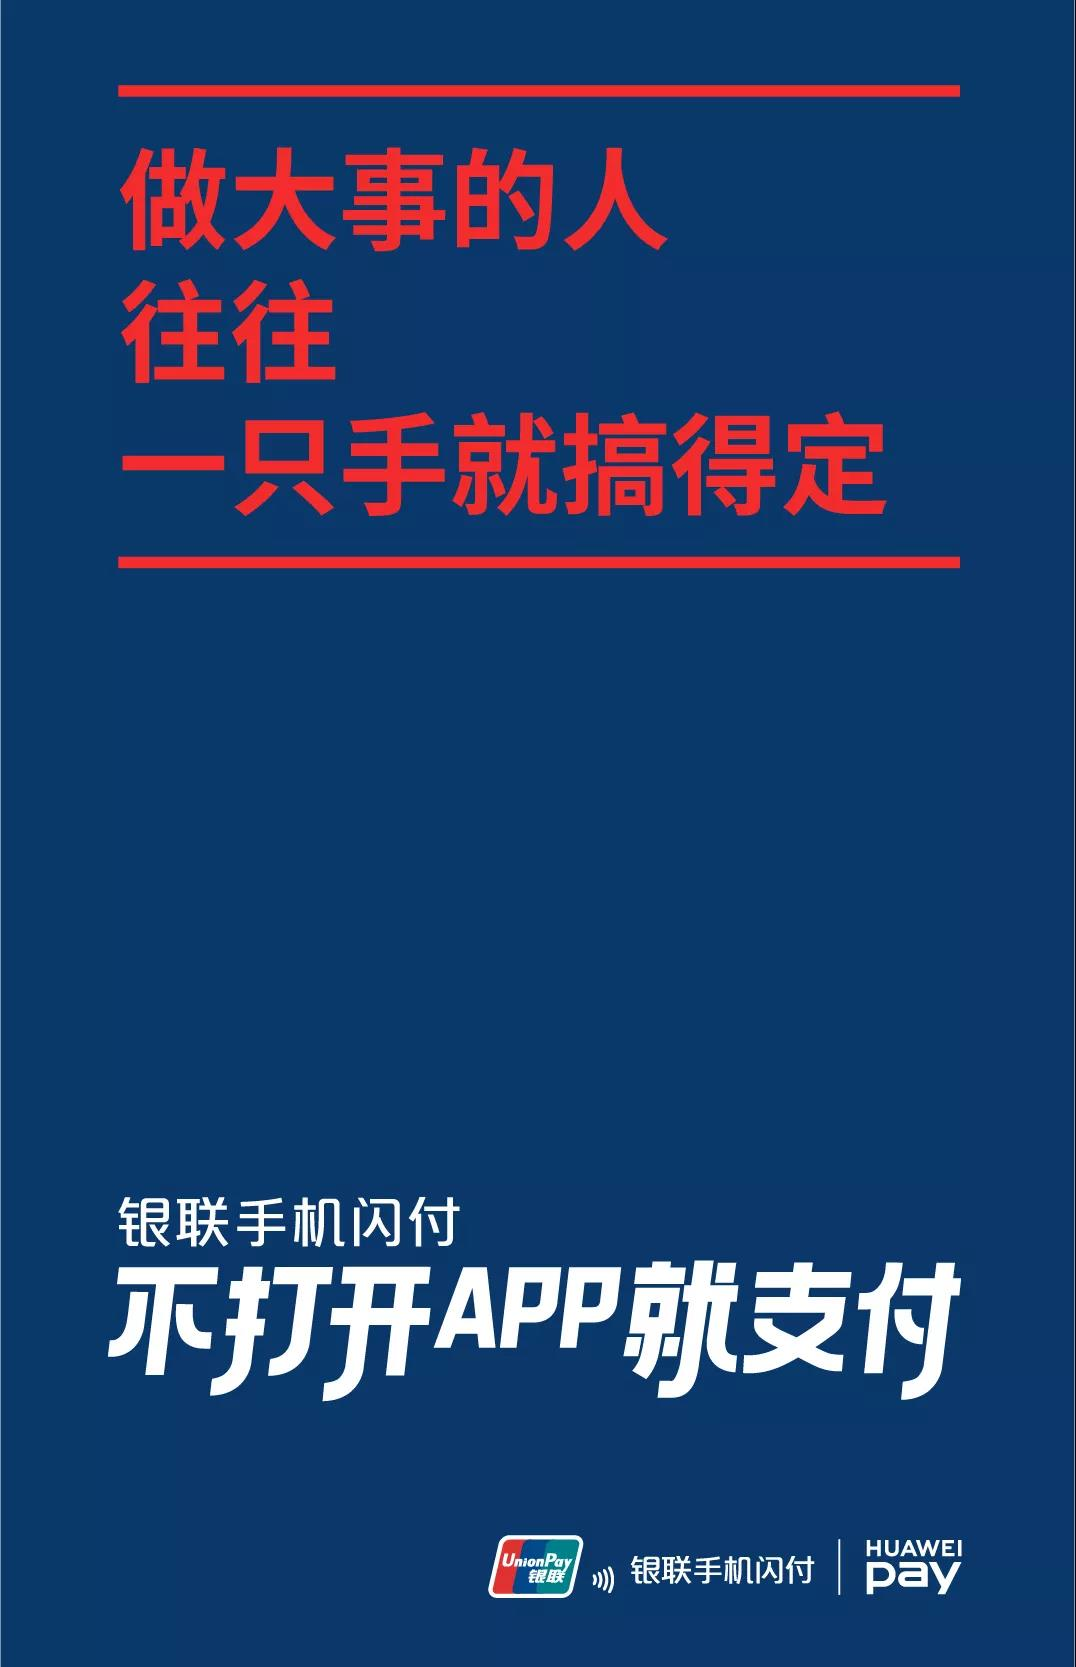 China UnionPay-Huawei Pay-4